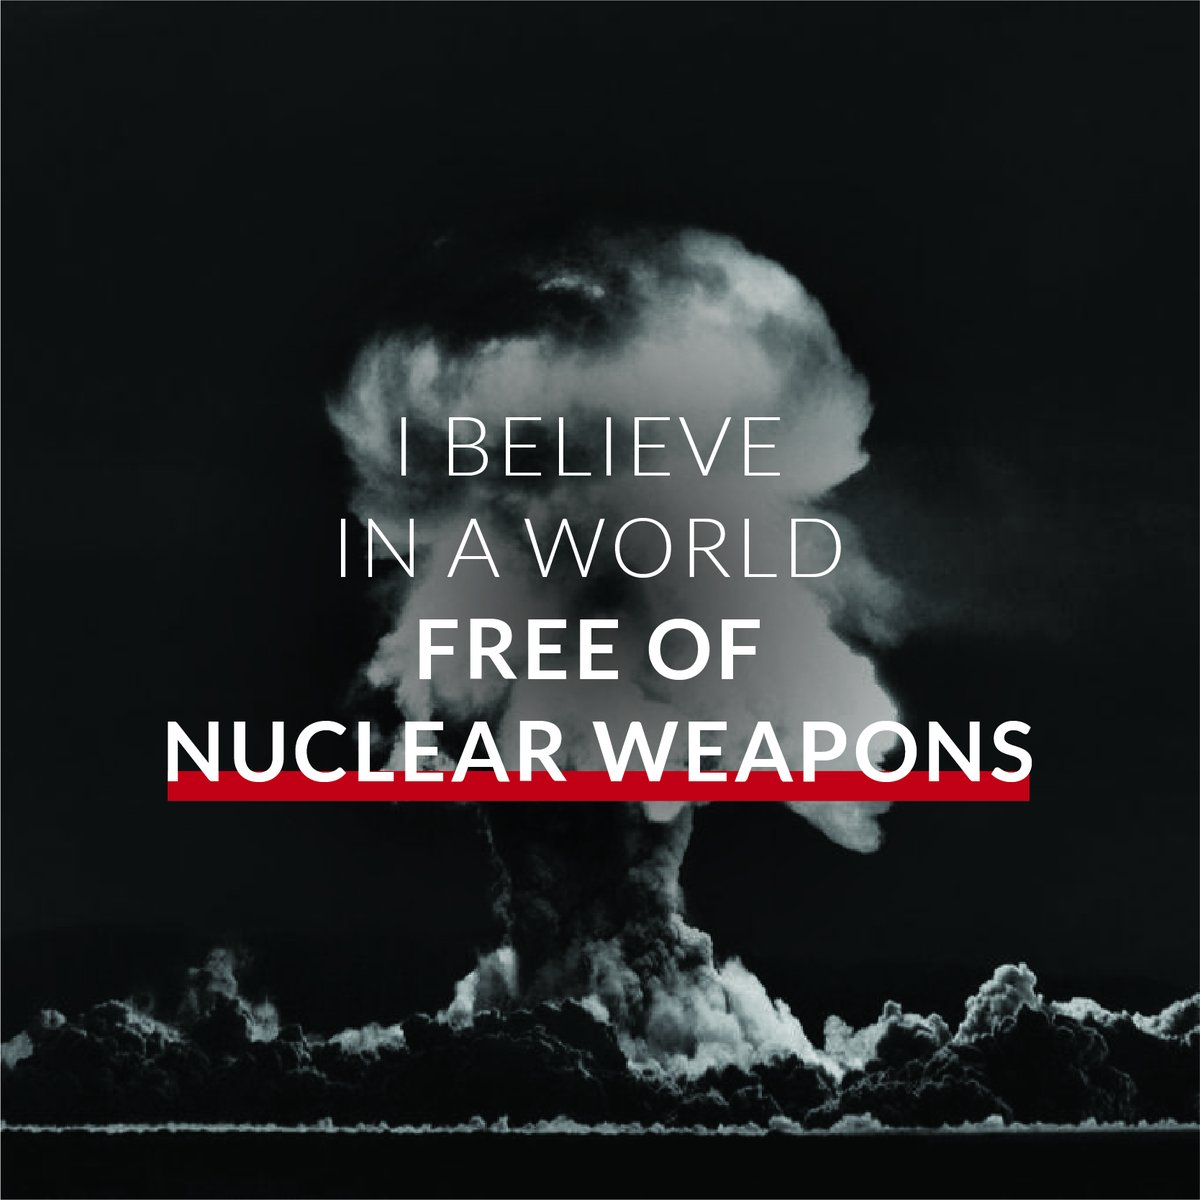 We banned the bomb! A rare piece of good news in 2020: nuclear weapons are about to become illegal, after the 50th State ratified the #NuclearBan.